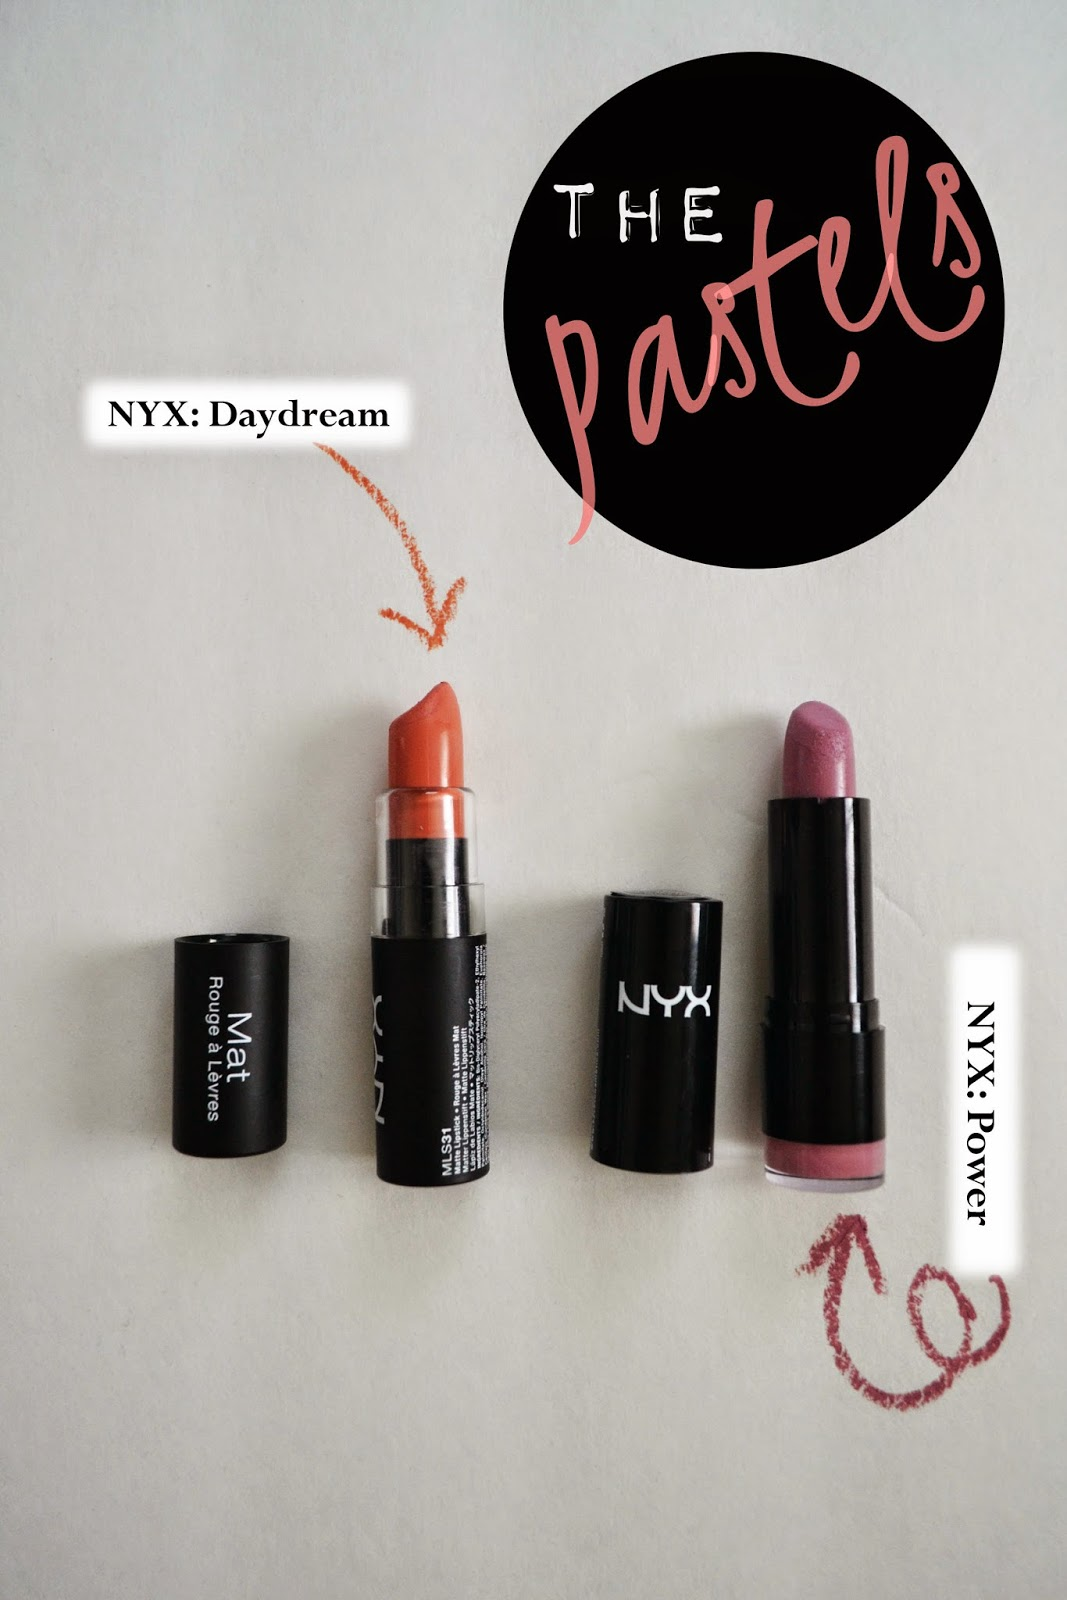 NYX Daydream and Power Lipstick